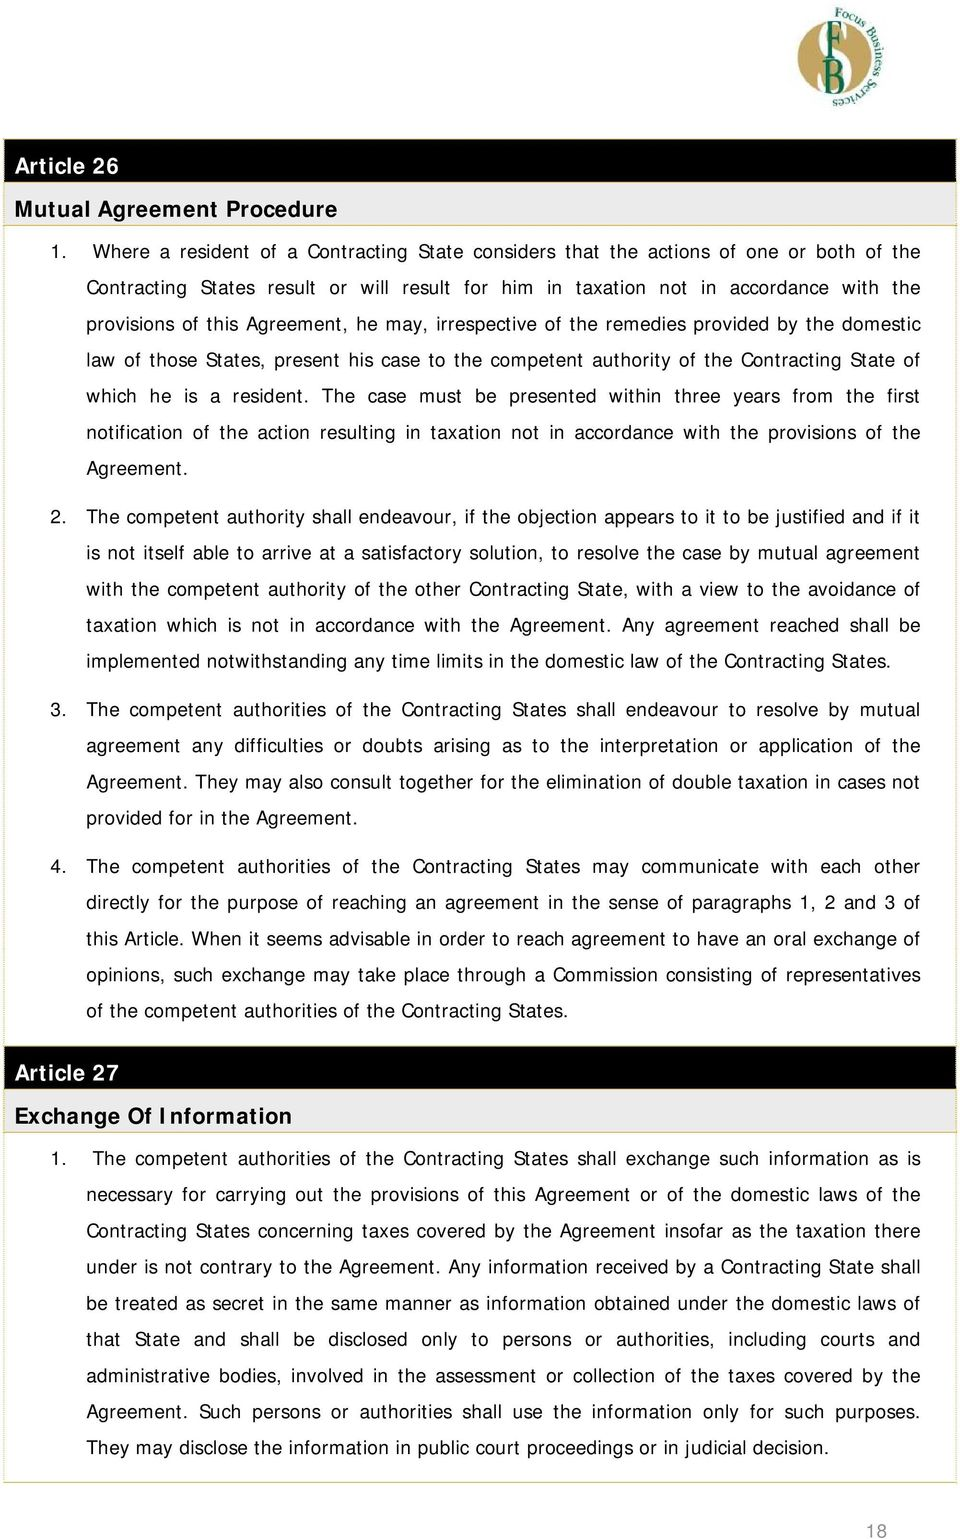 Agreement, he may, irrespective of the remedies provided by the domestic law of those States, present his case to the competent authority of the Contracting State of which he is a resident.